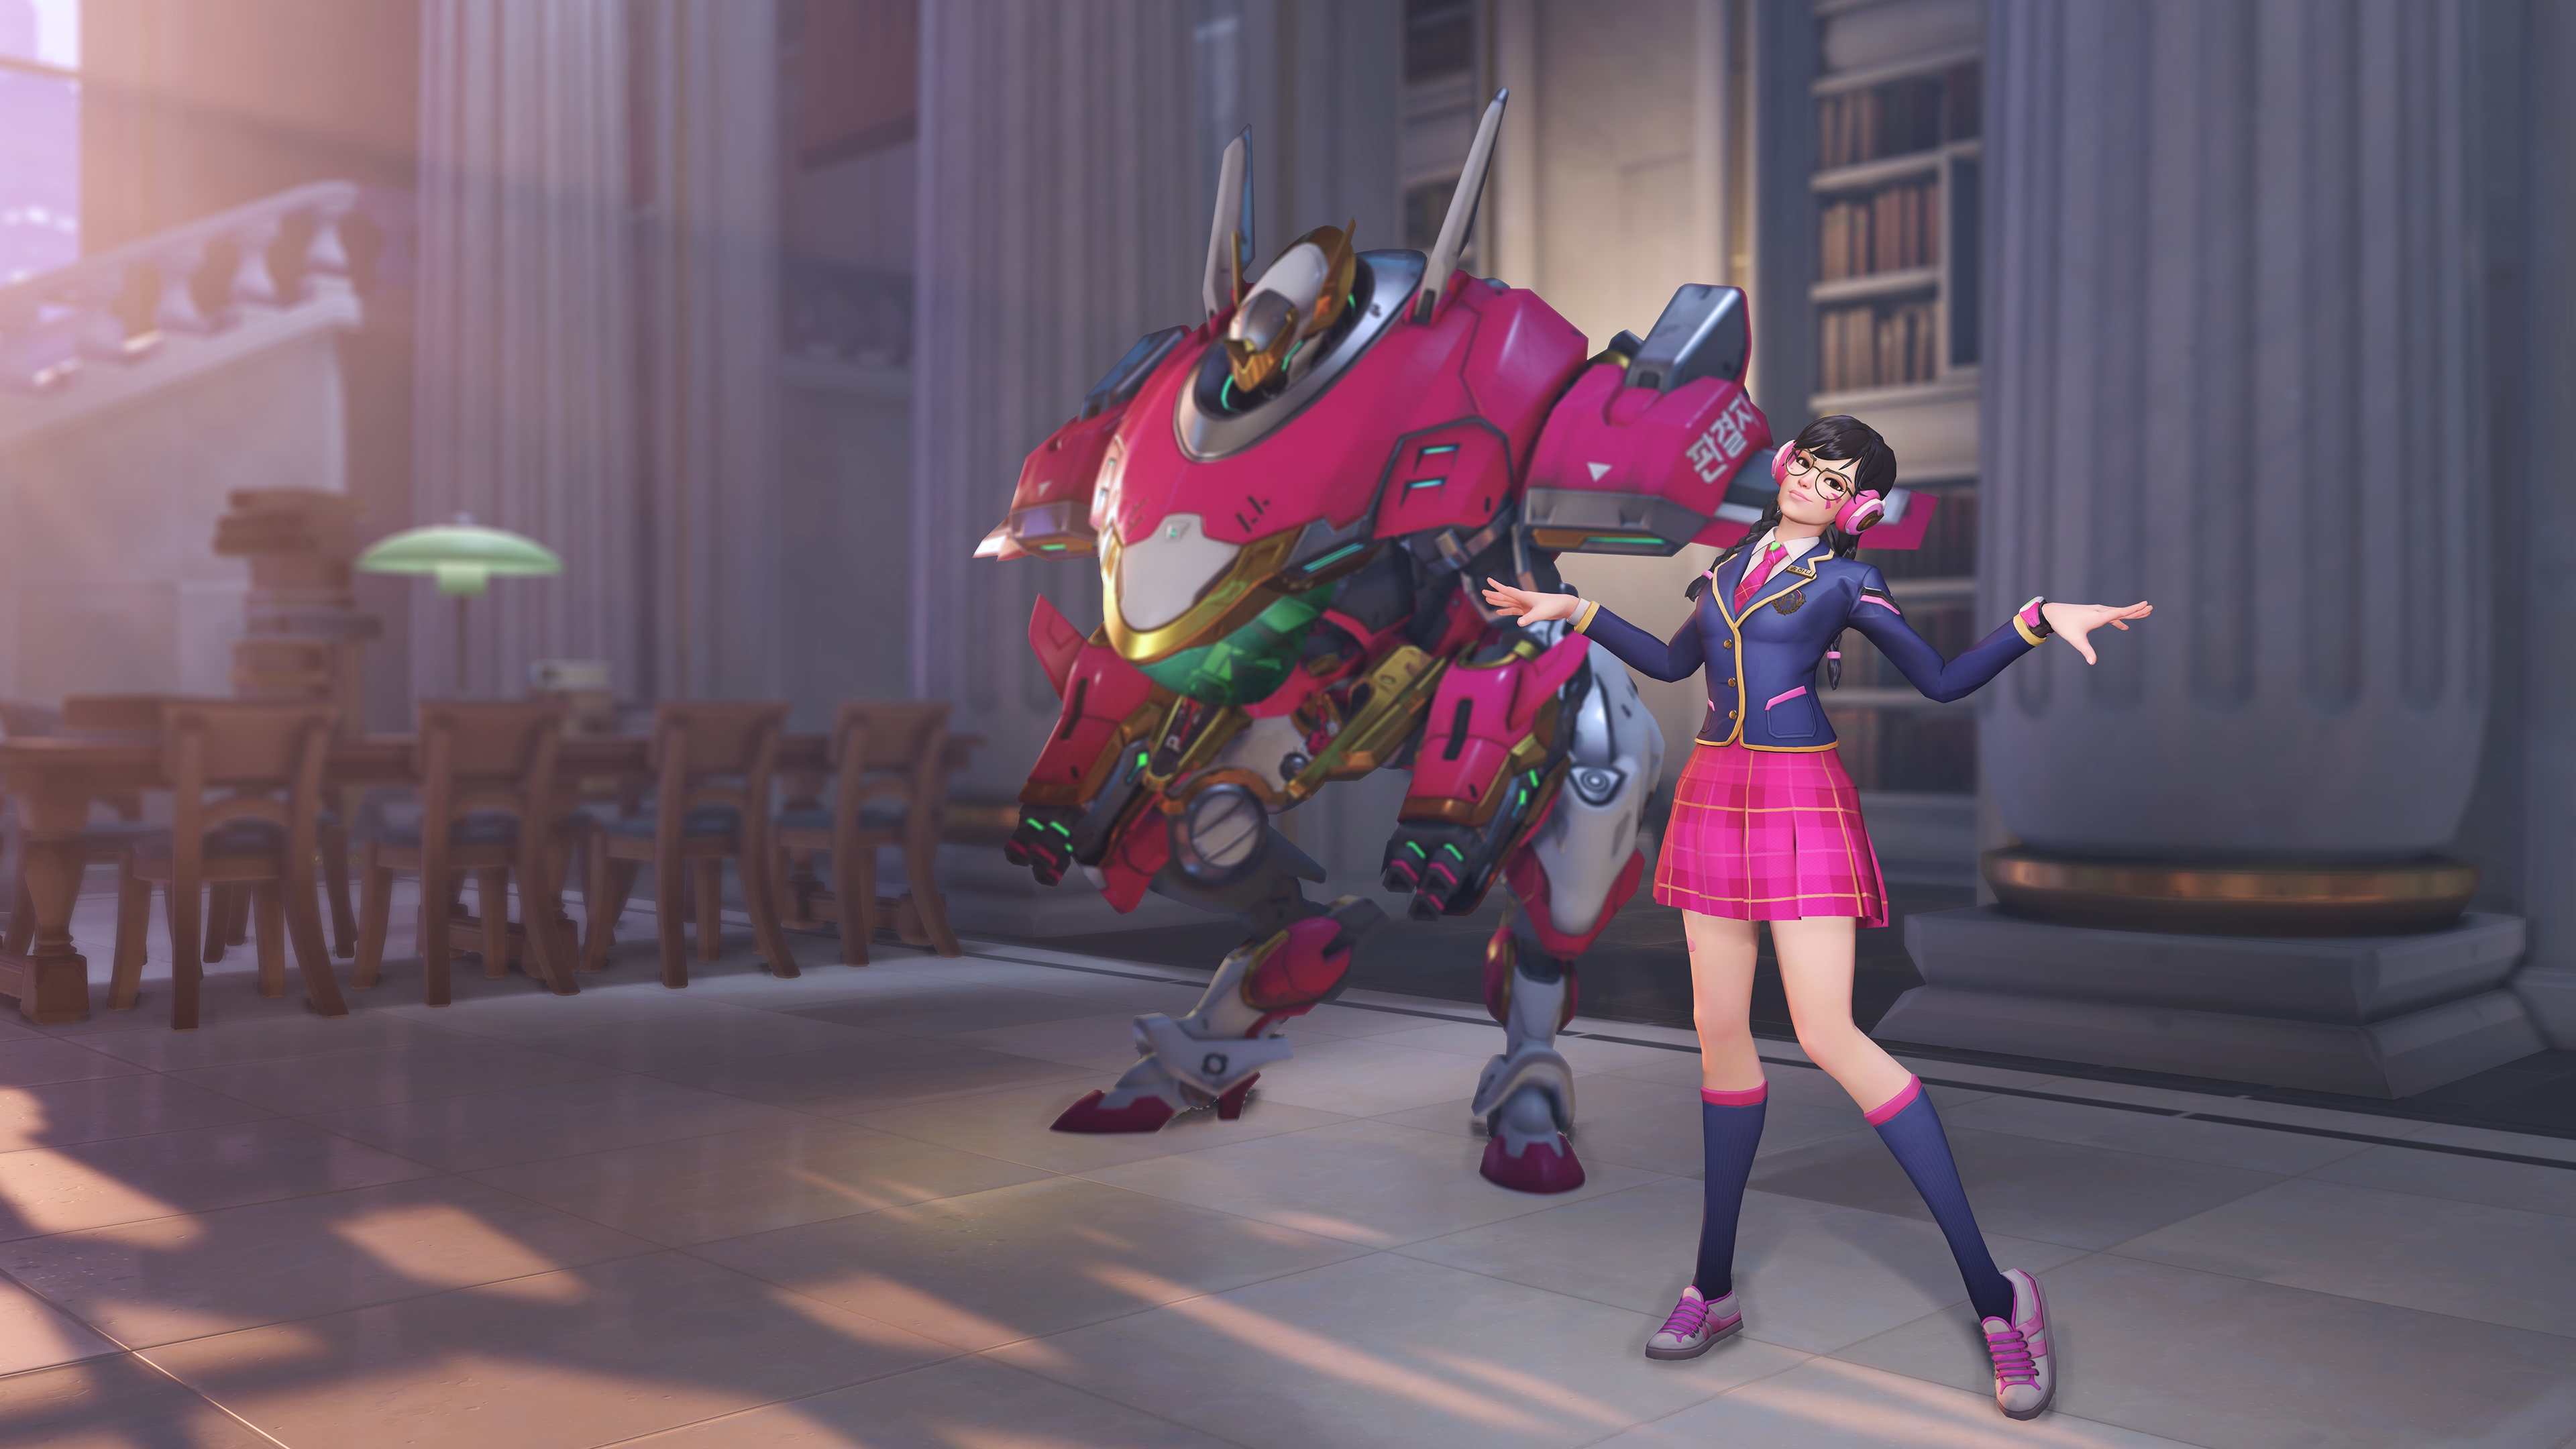 D.Va stands next to her MEKA in her Academy skin from Overwatch's Anniversary 2019 event.